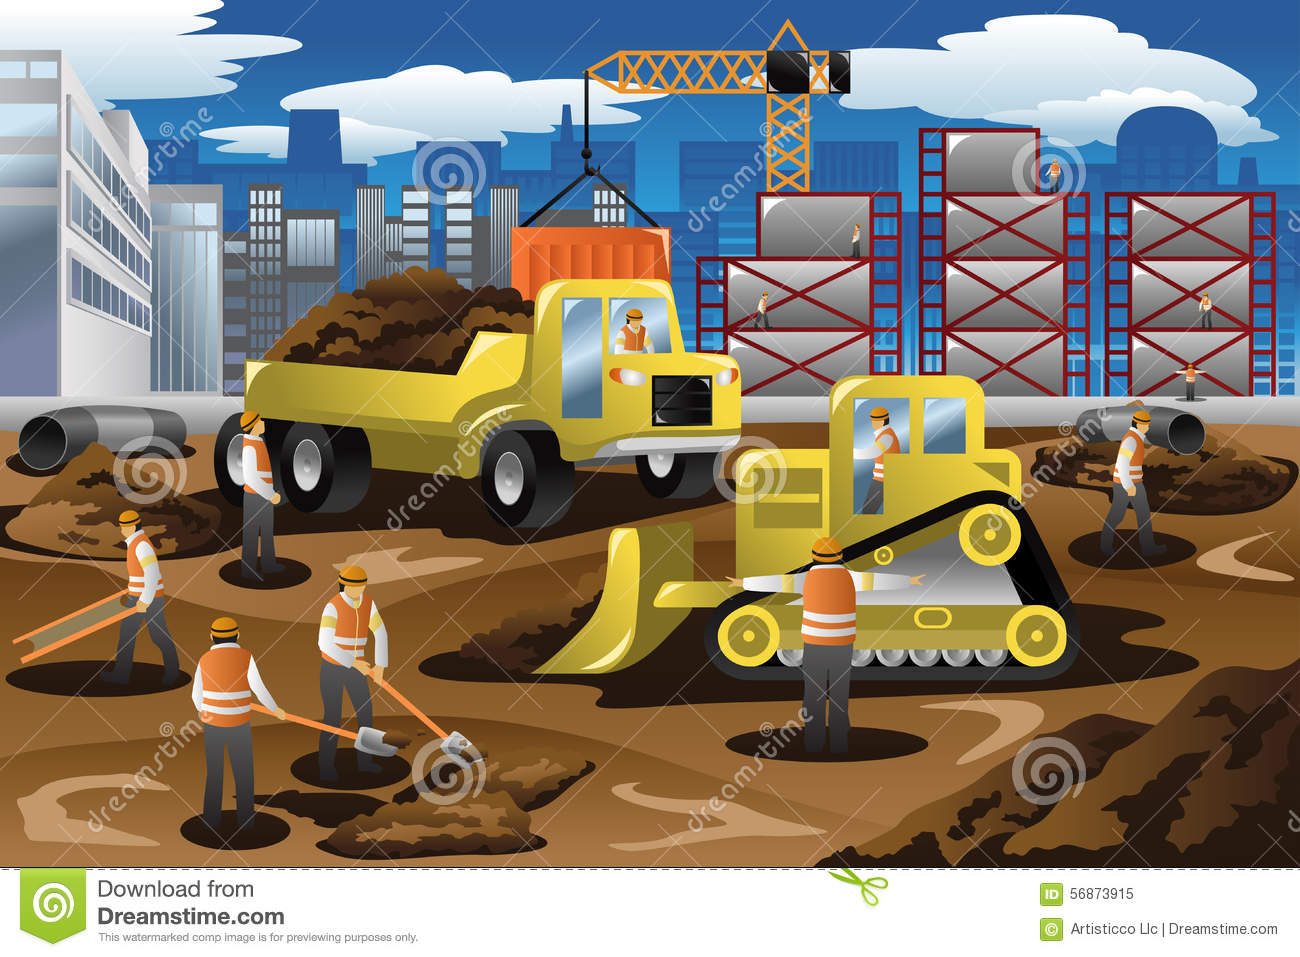 Workers In A Construction Site Stock Vector - Image: 56873915